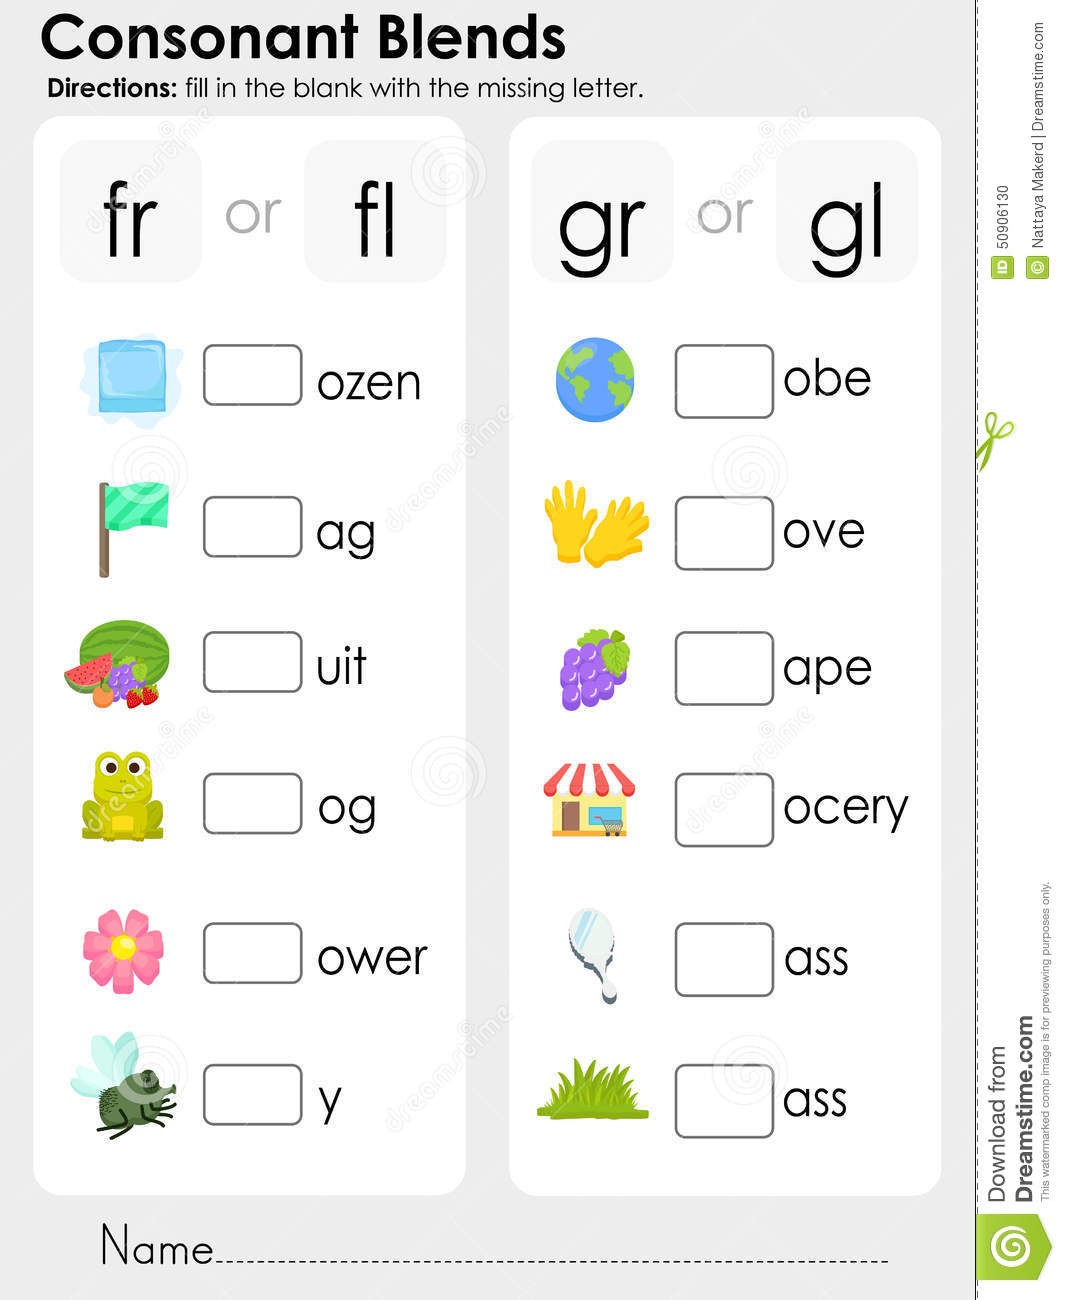 Uncategorized Blends Worksheets consonant blends missing letter worksheet for education stock worksheet